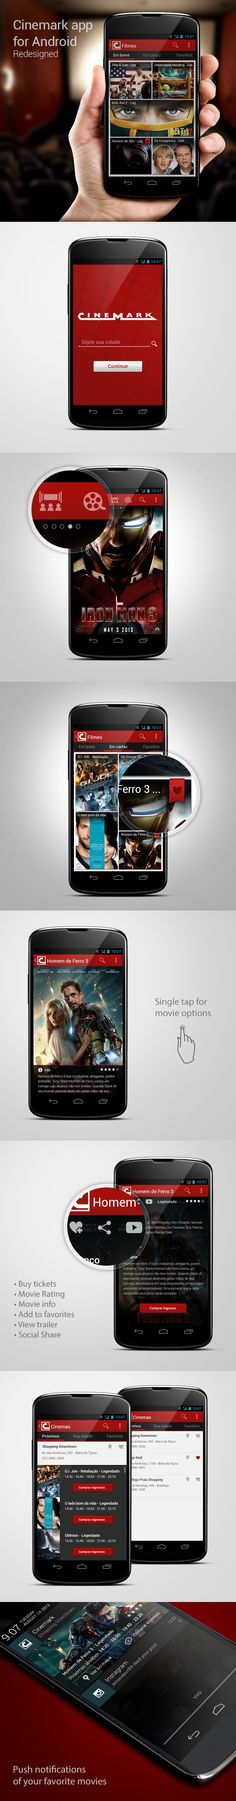 Cinemark app for Android Redesigned by Ricardo Monteiro, via Behance